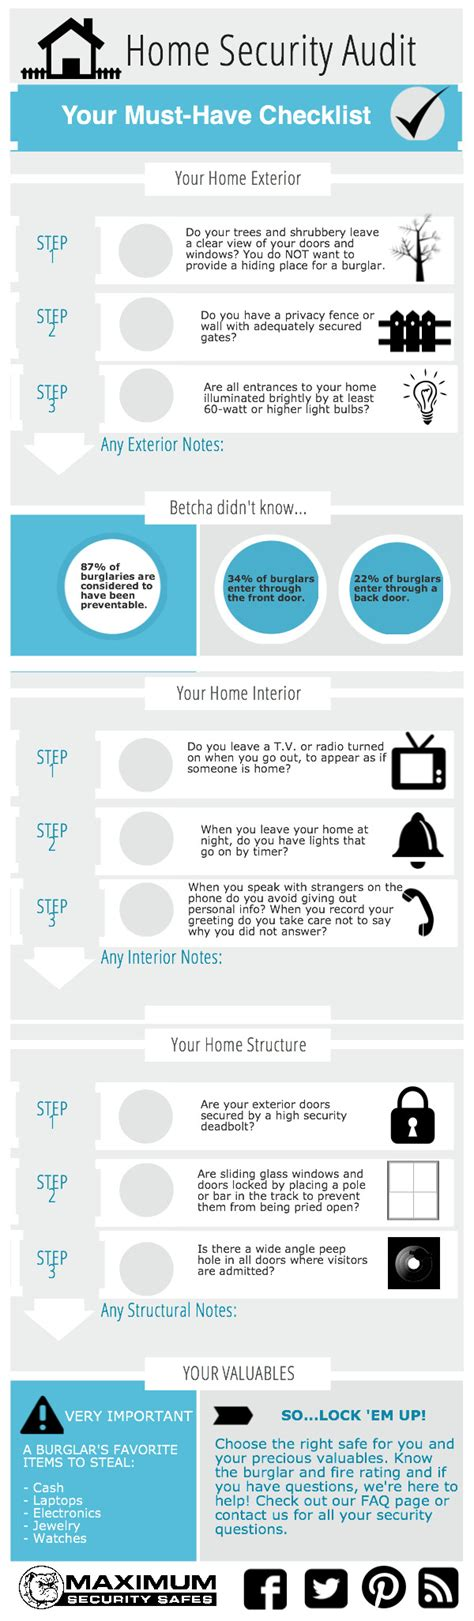 home security audit checklist piktochart visual editor